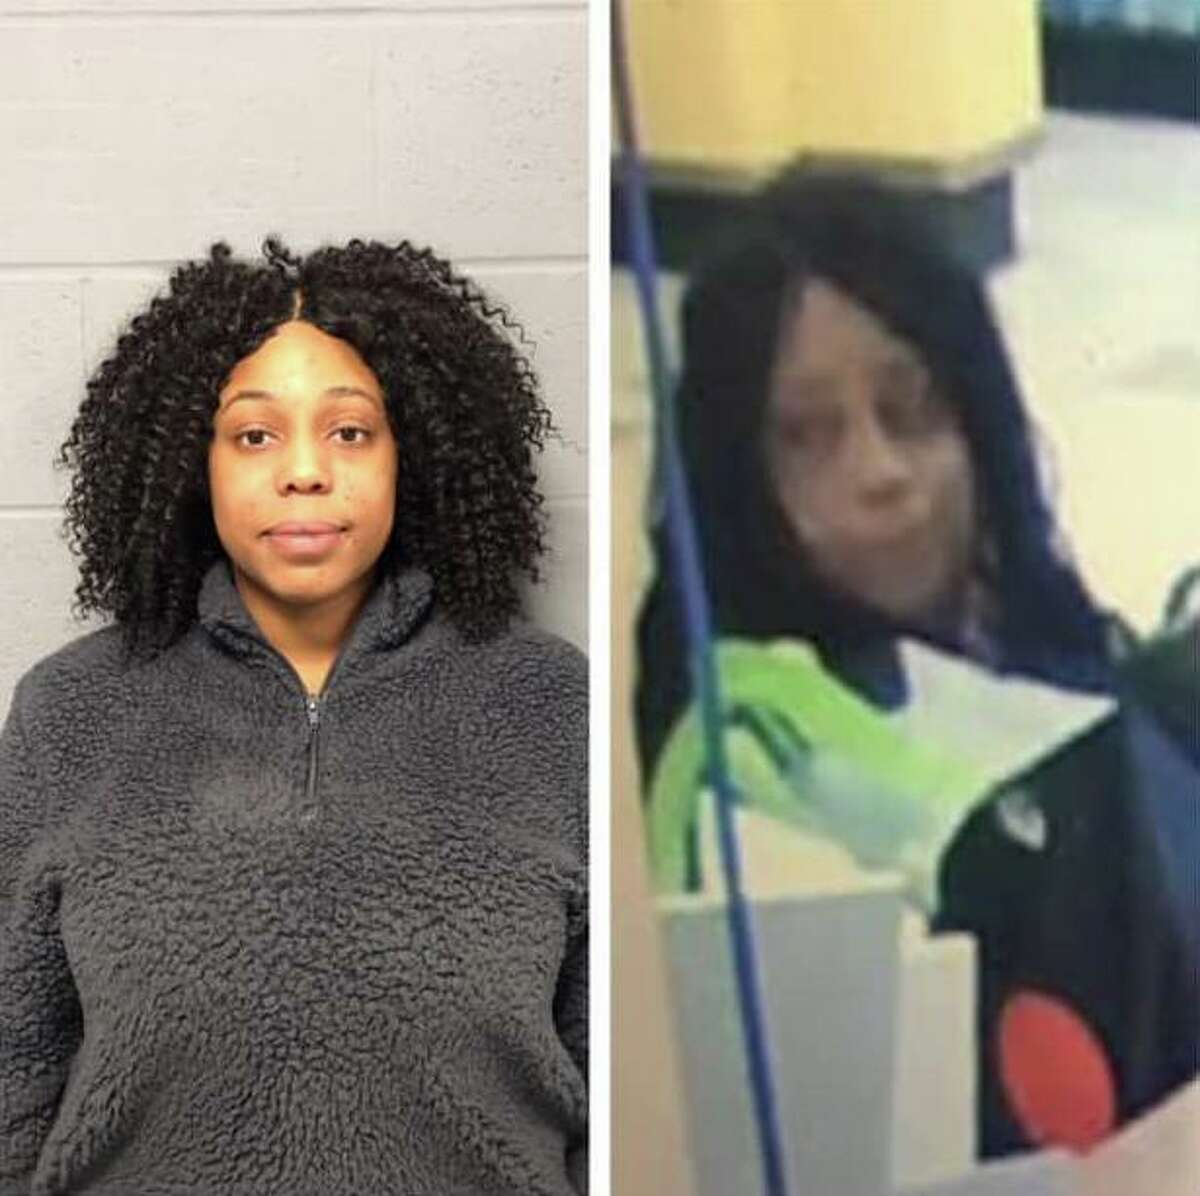 Shamira White, 29, has been charged with sixth-degree larceny. Police say the photo on the right is from an alleged theft at Stop & Shop last month, and claim the woman in the image is White.